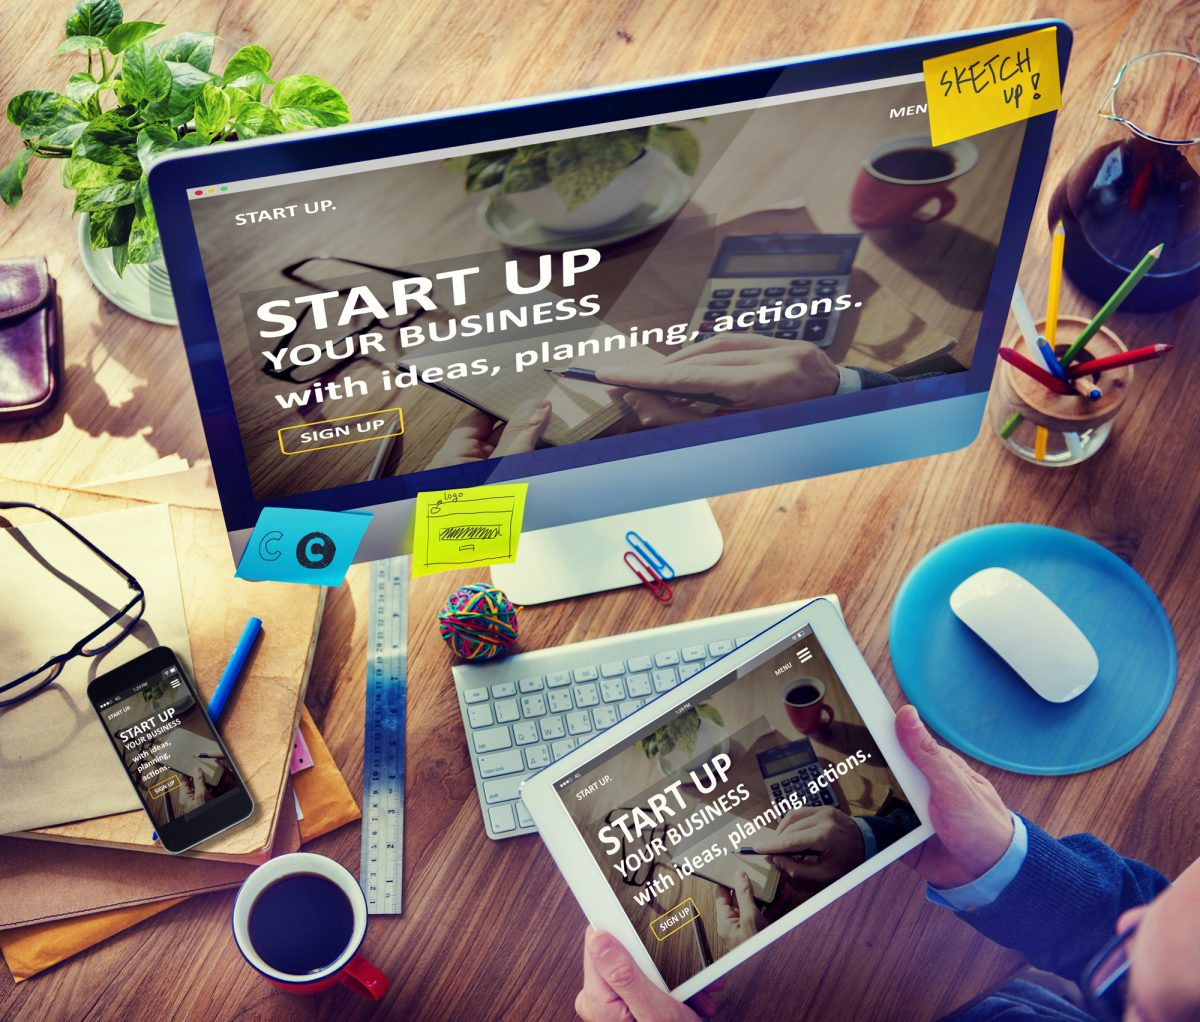 ffm-starting-online-business-startup--website-01